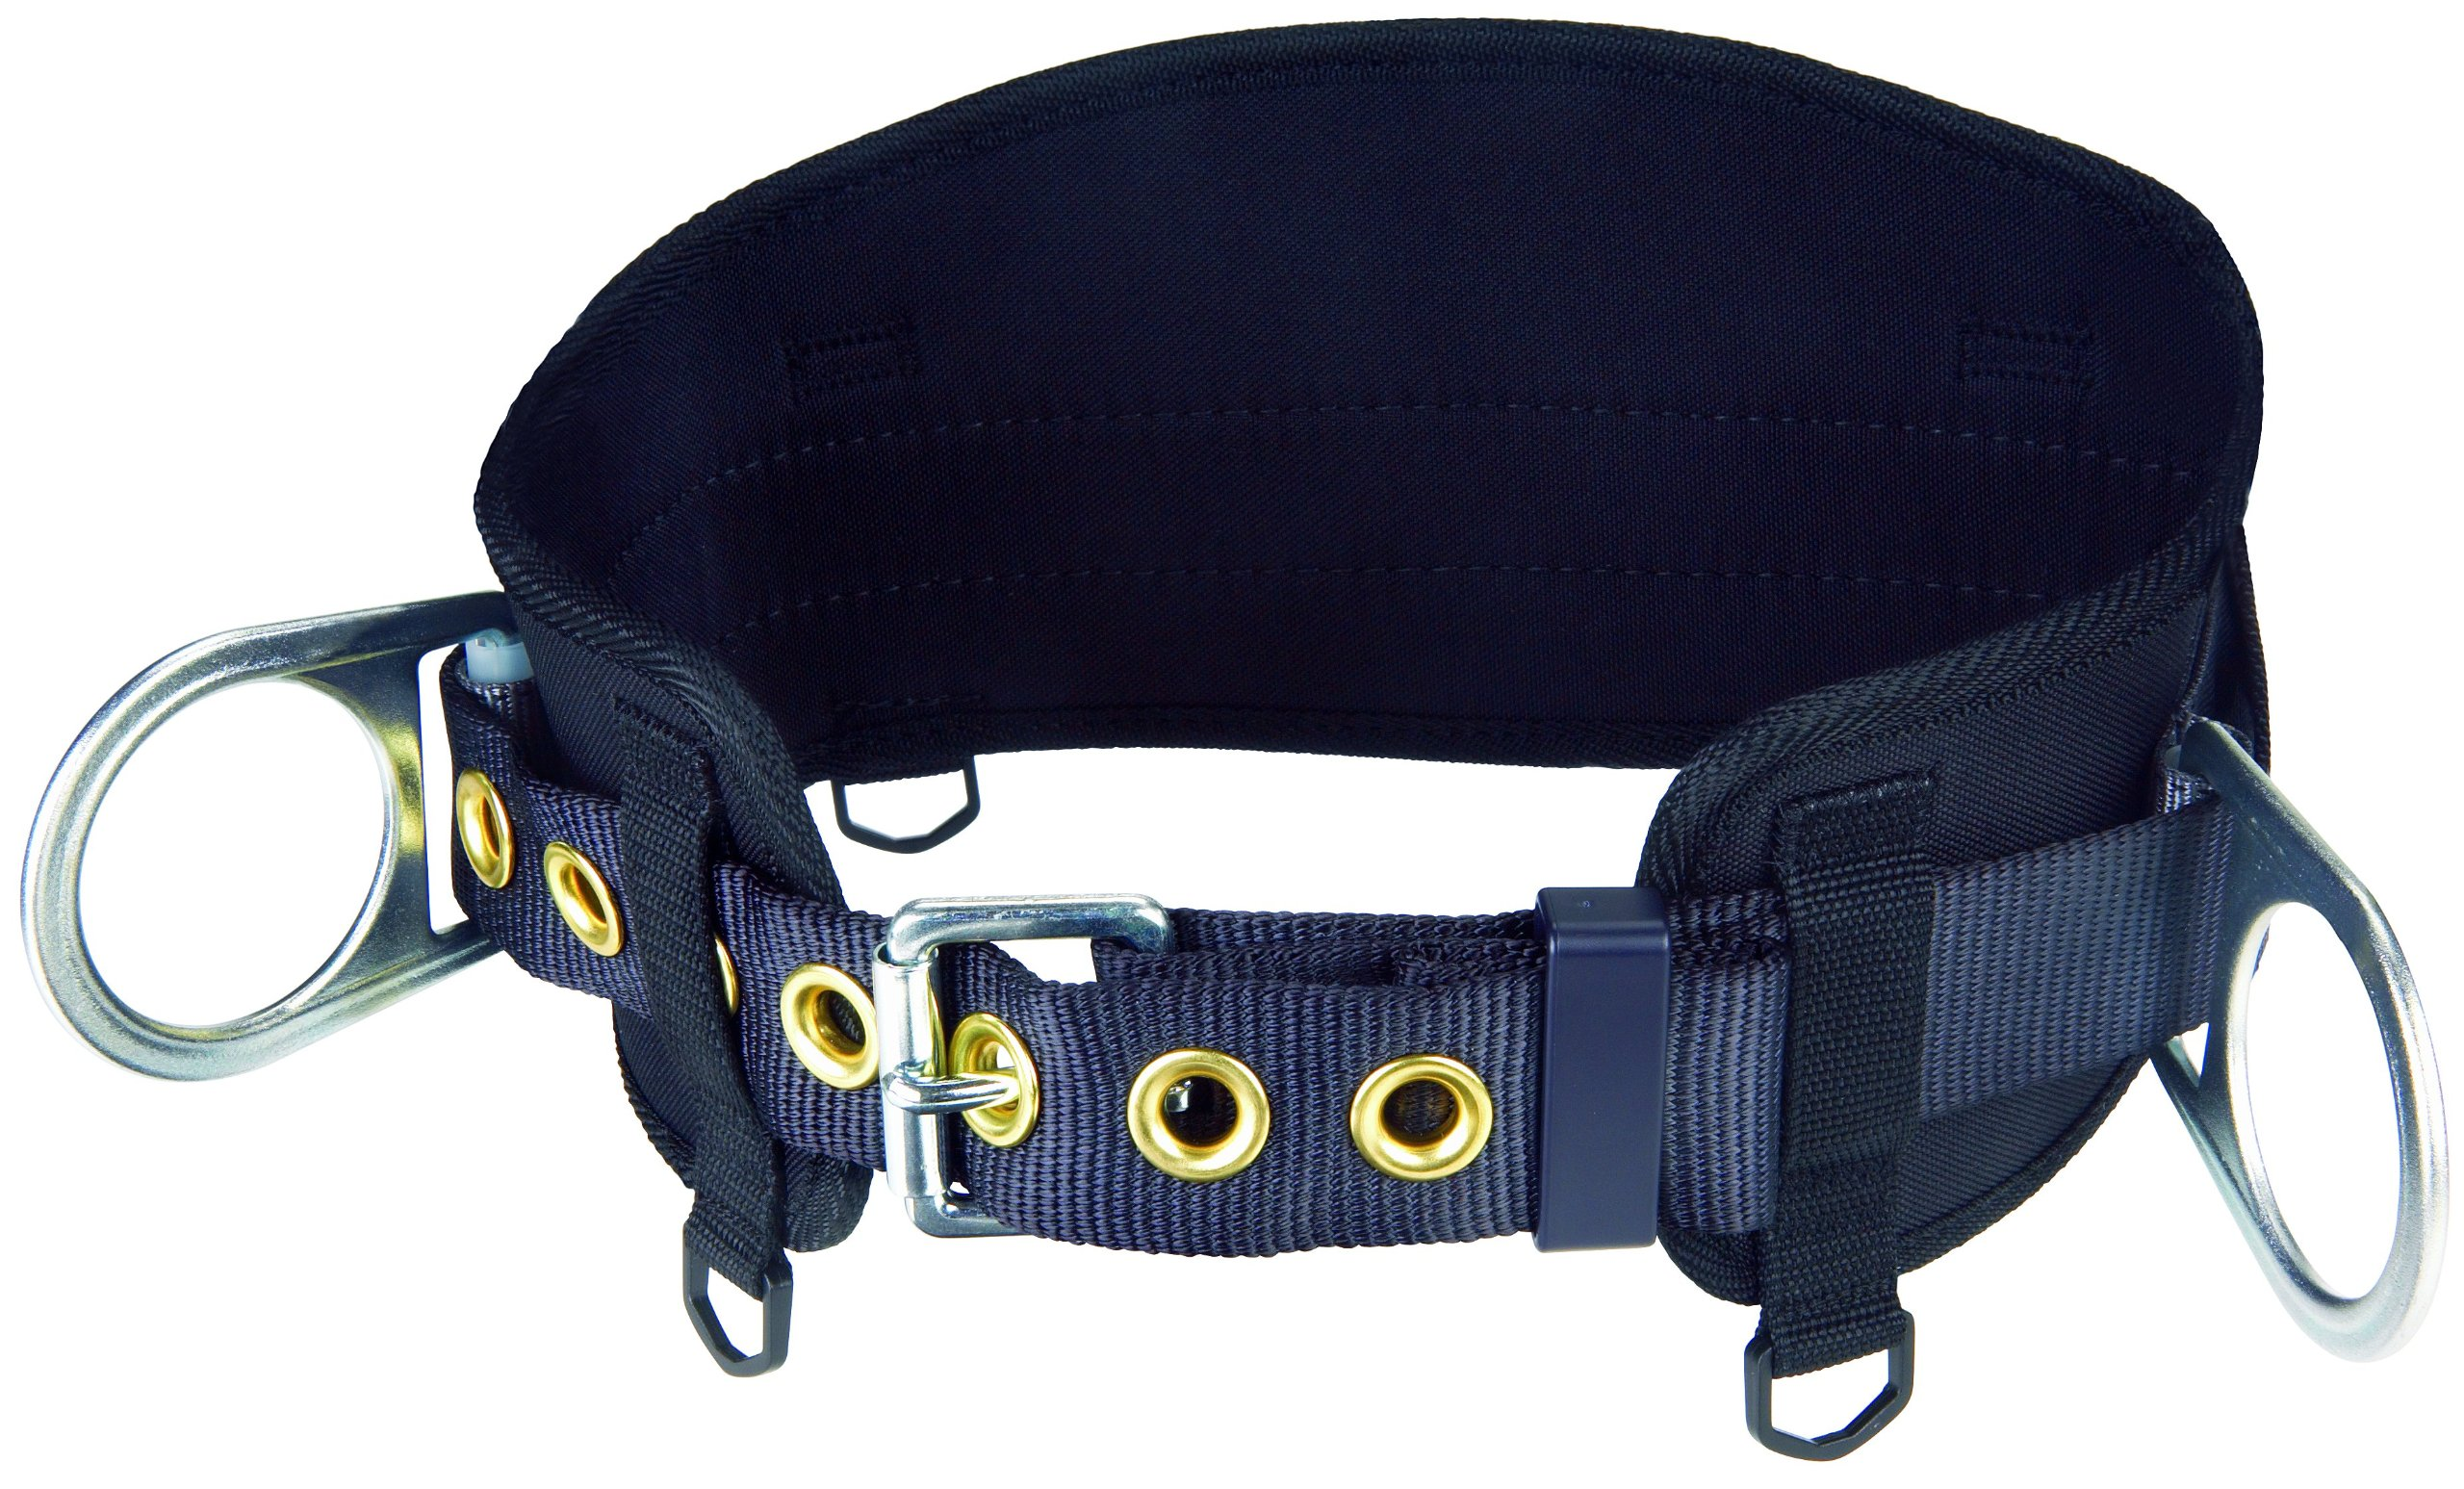 3M Protecta PRO Body Belt with Hip Pad, 2 D-Rings, Medium/Large, 1091014 (Color May Vary)